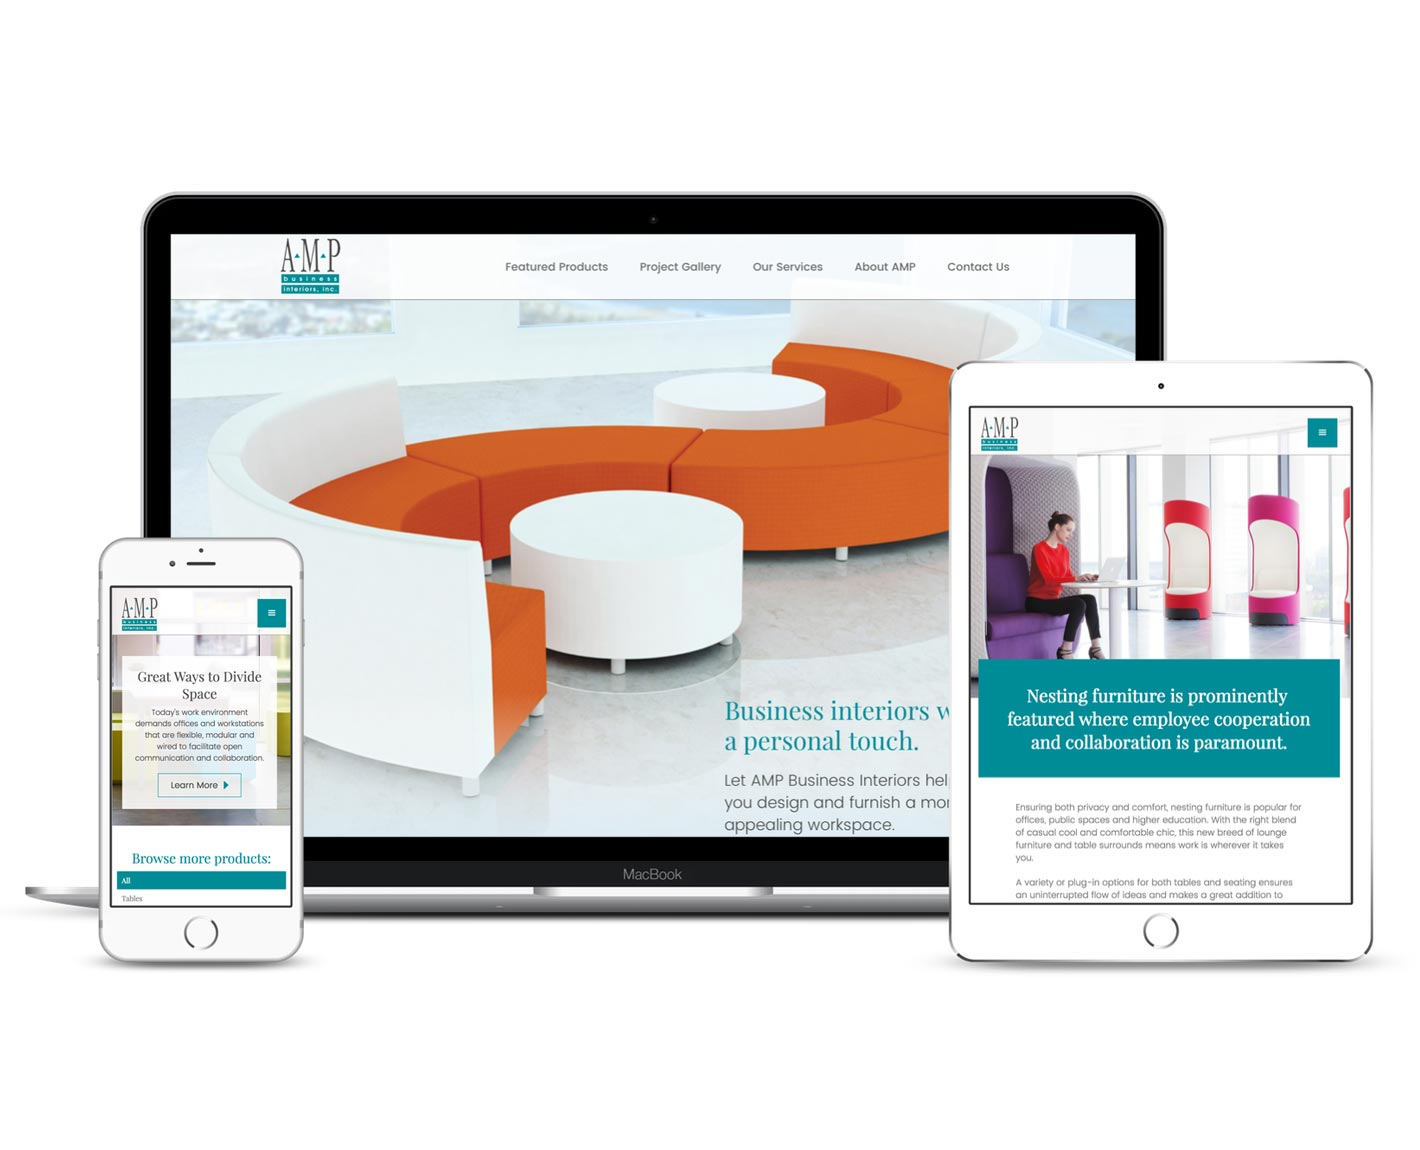 AMP Business Interiors Website Redesign by Tara Hoover